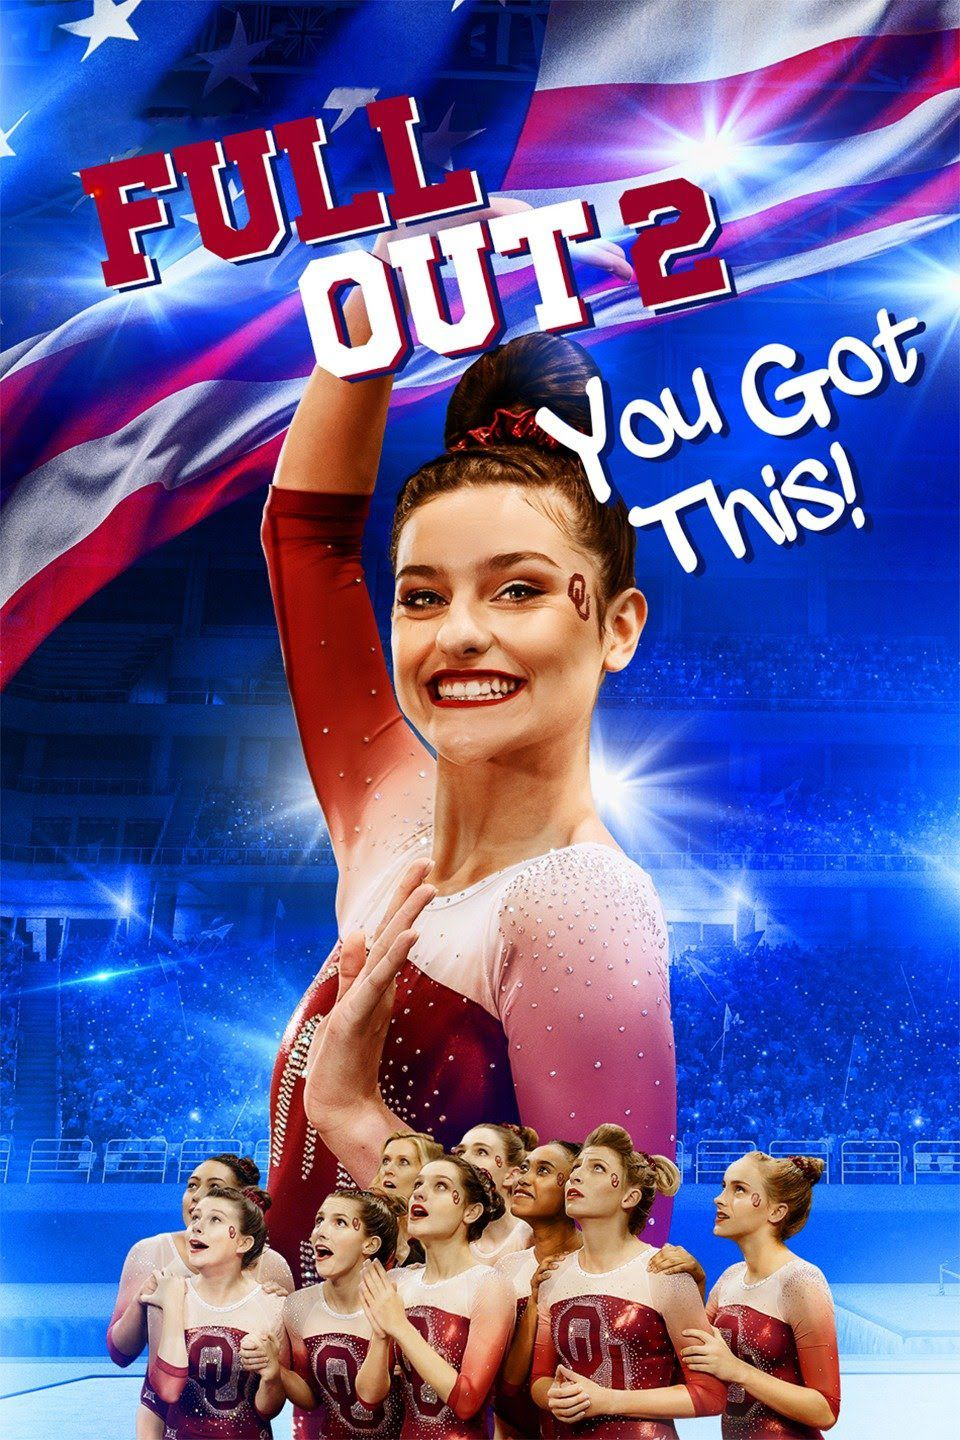 Voir Film Full Out 2: You Got This! - Film (2021) streaming VF gratuit complet